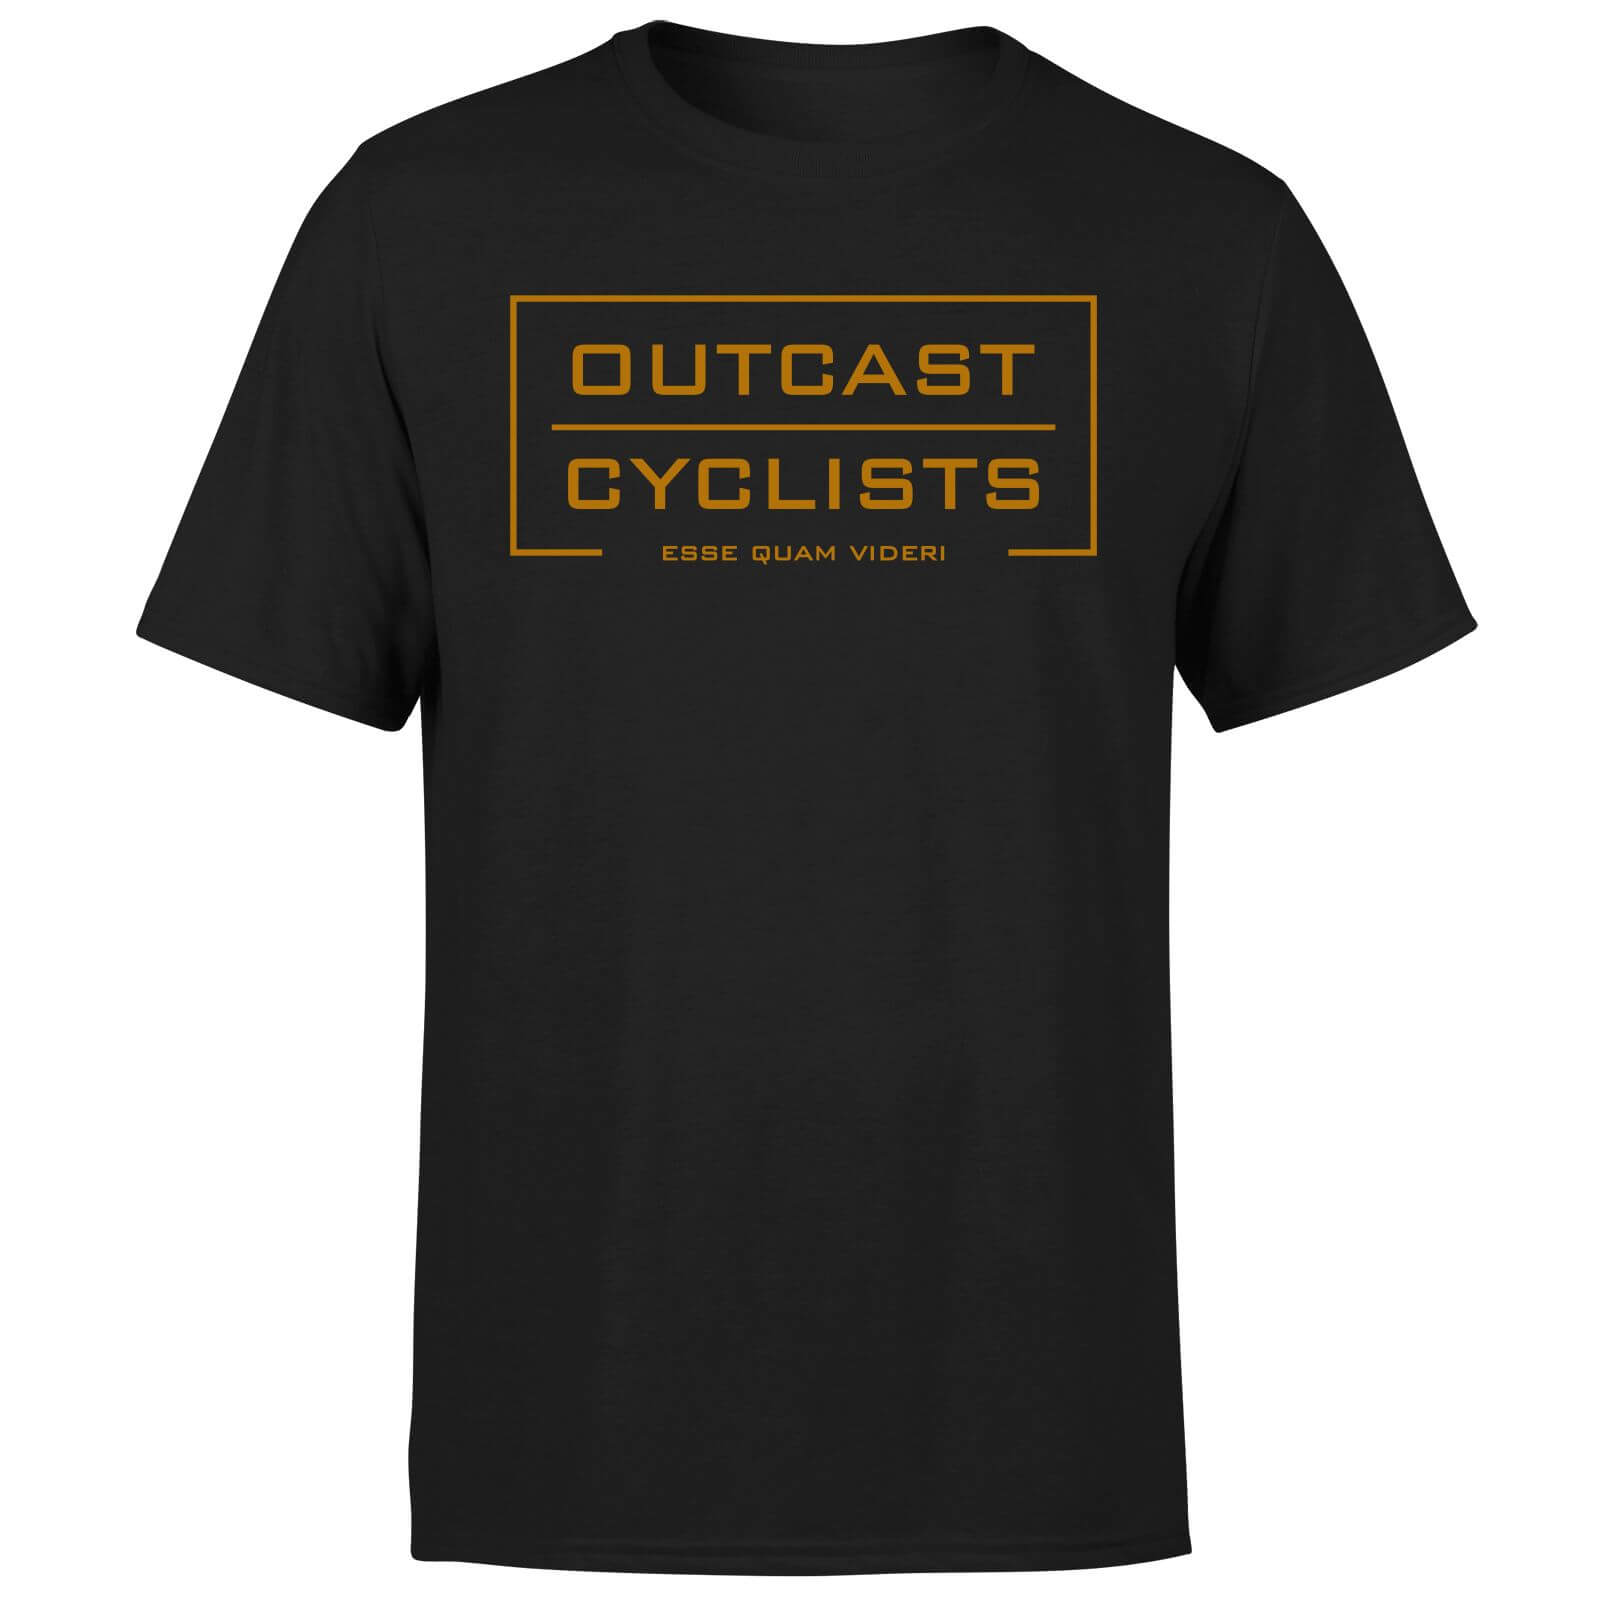 Outcast Cyclists Chest Logo T-Shirt - Black